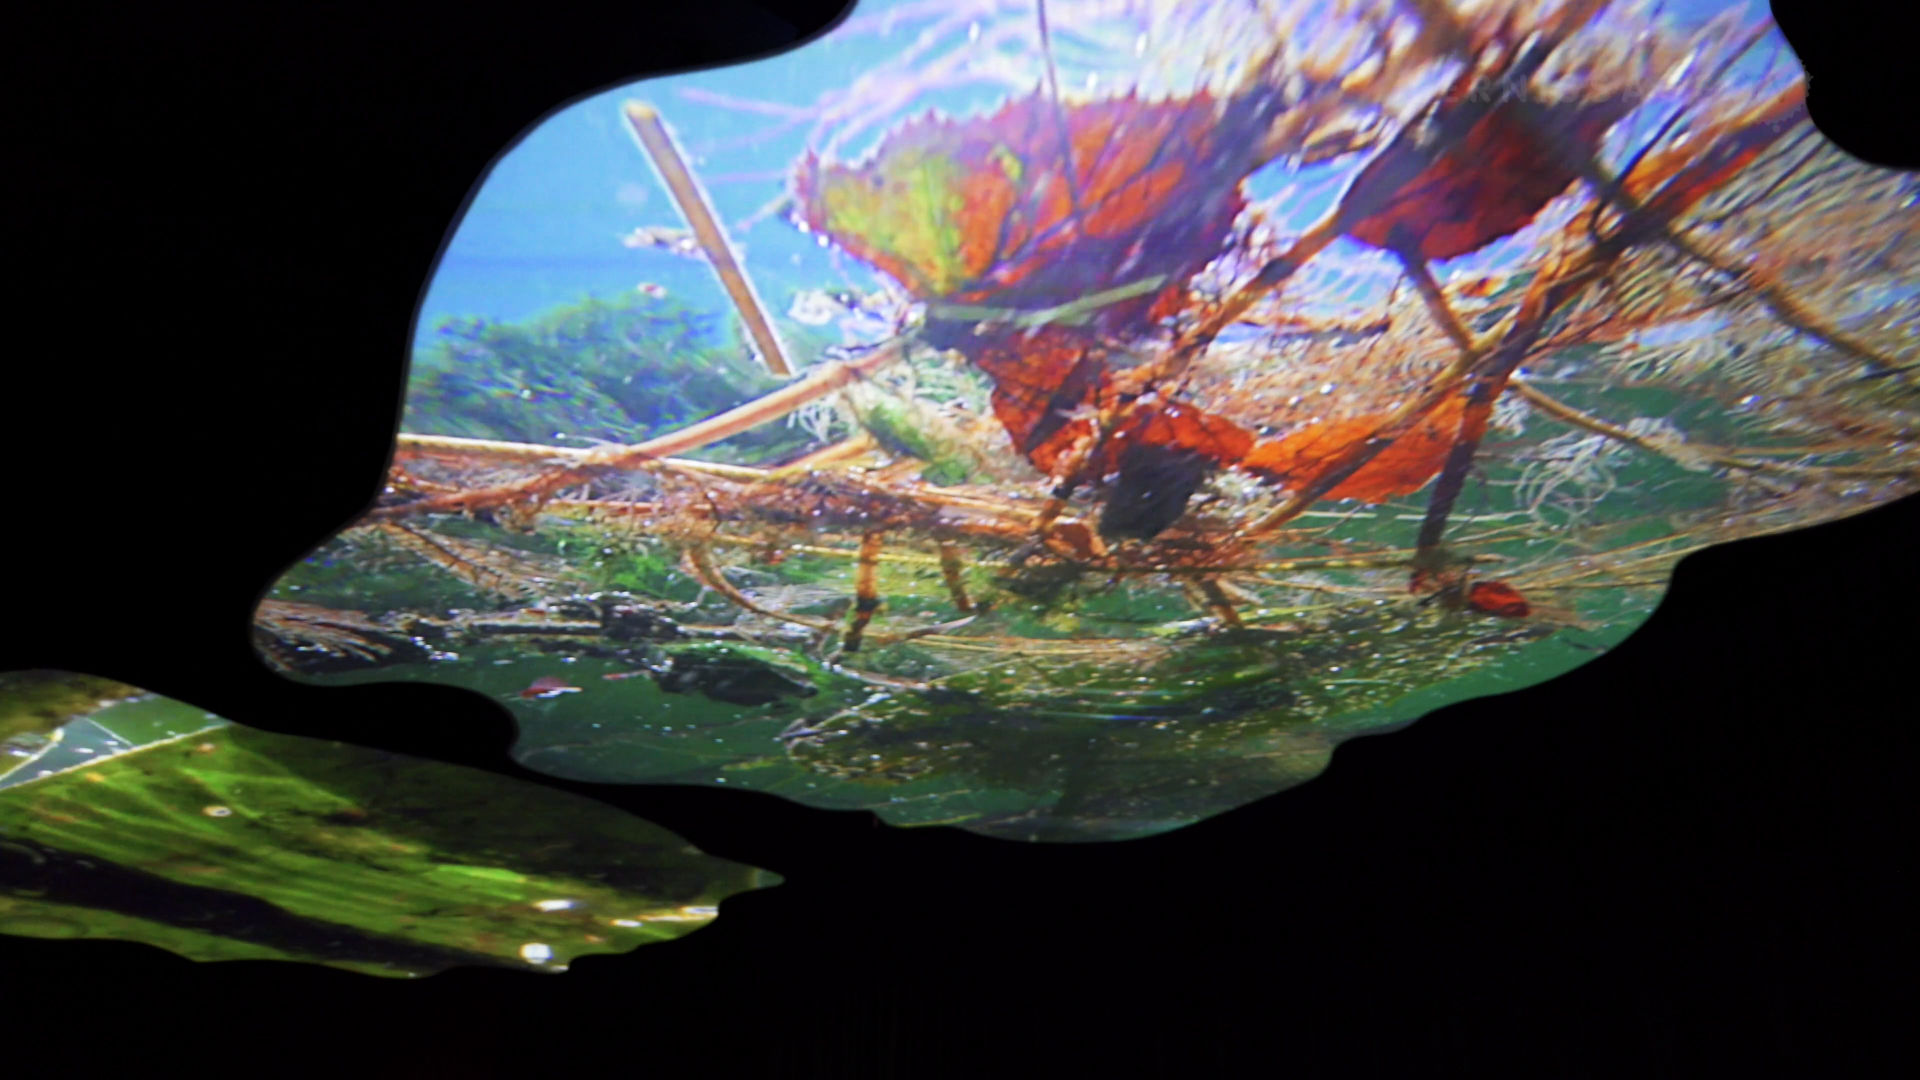 Pipilotti Rist: Pixel Forest / New Museum, New York City